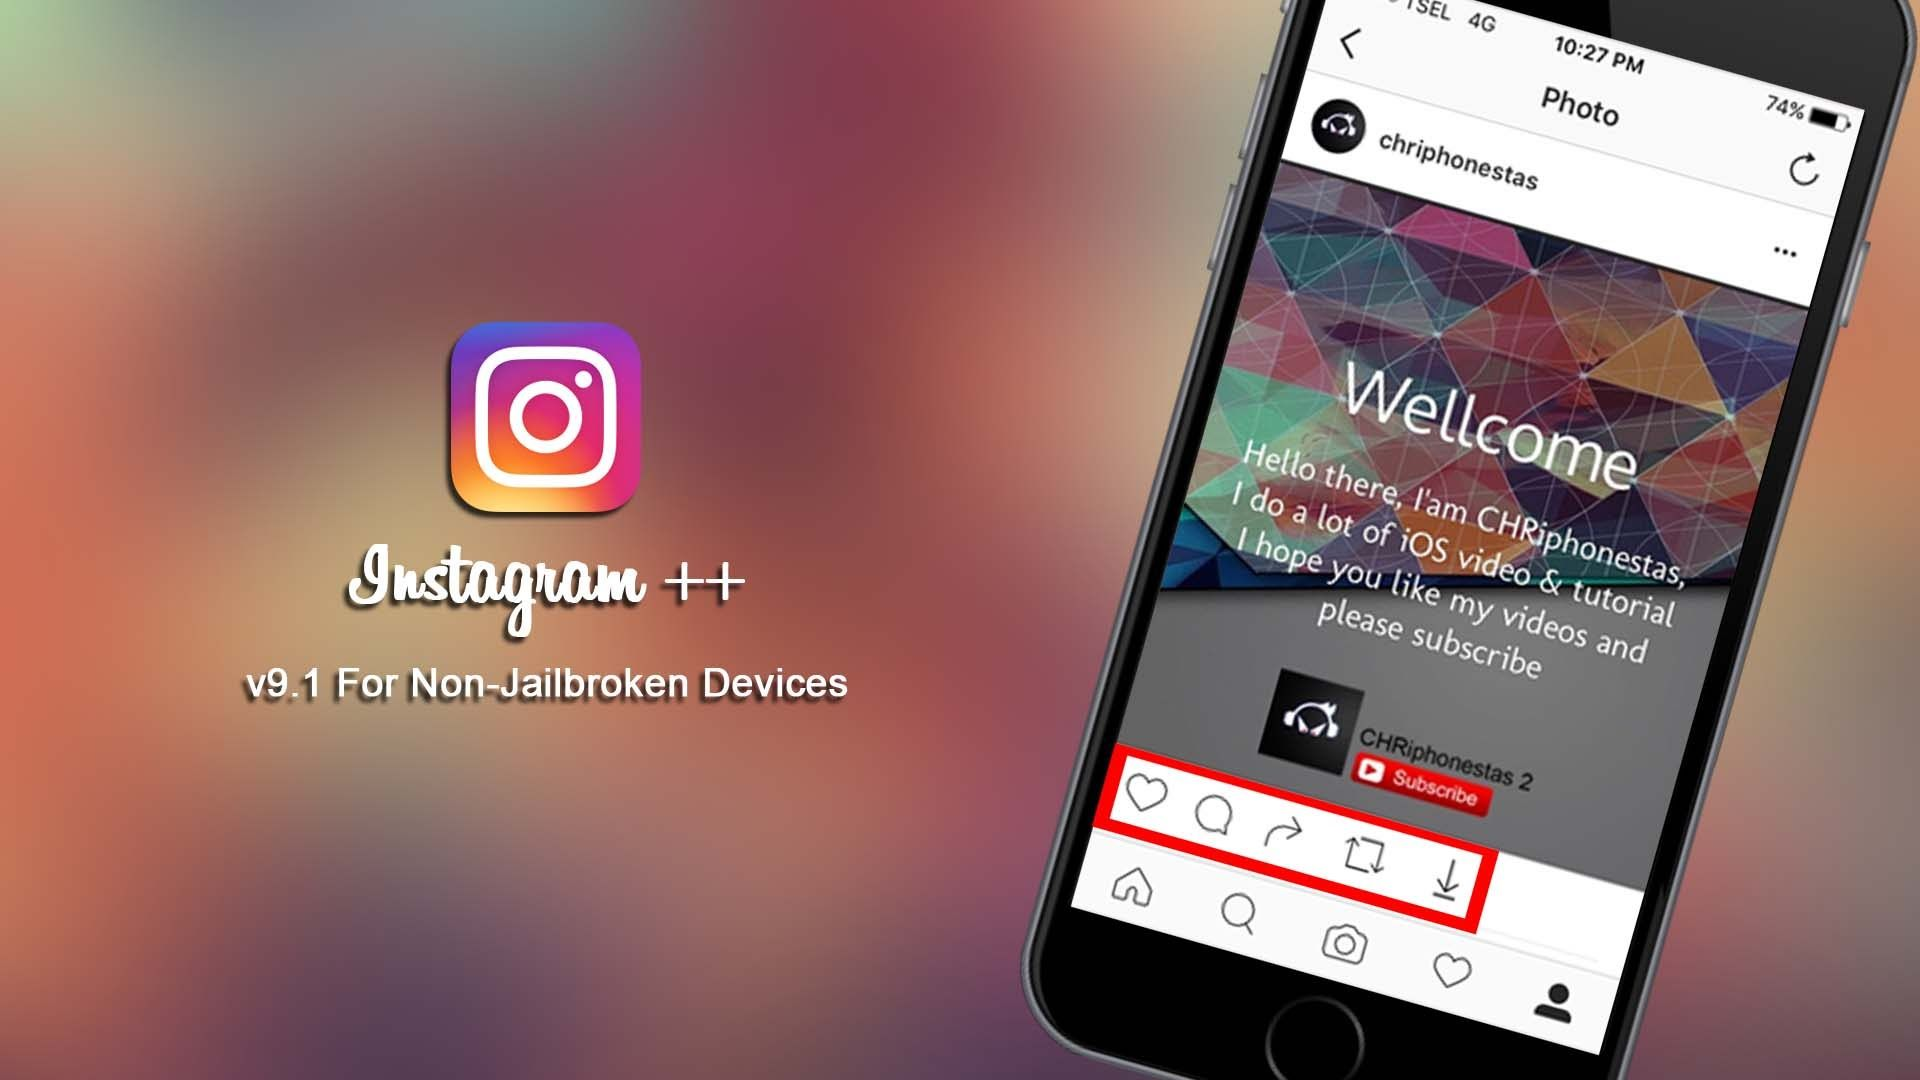 Update] Install Instagram ++ v9 1 For iOS 9 3 5 / 10 Without